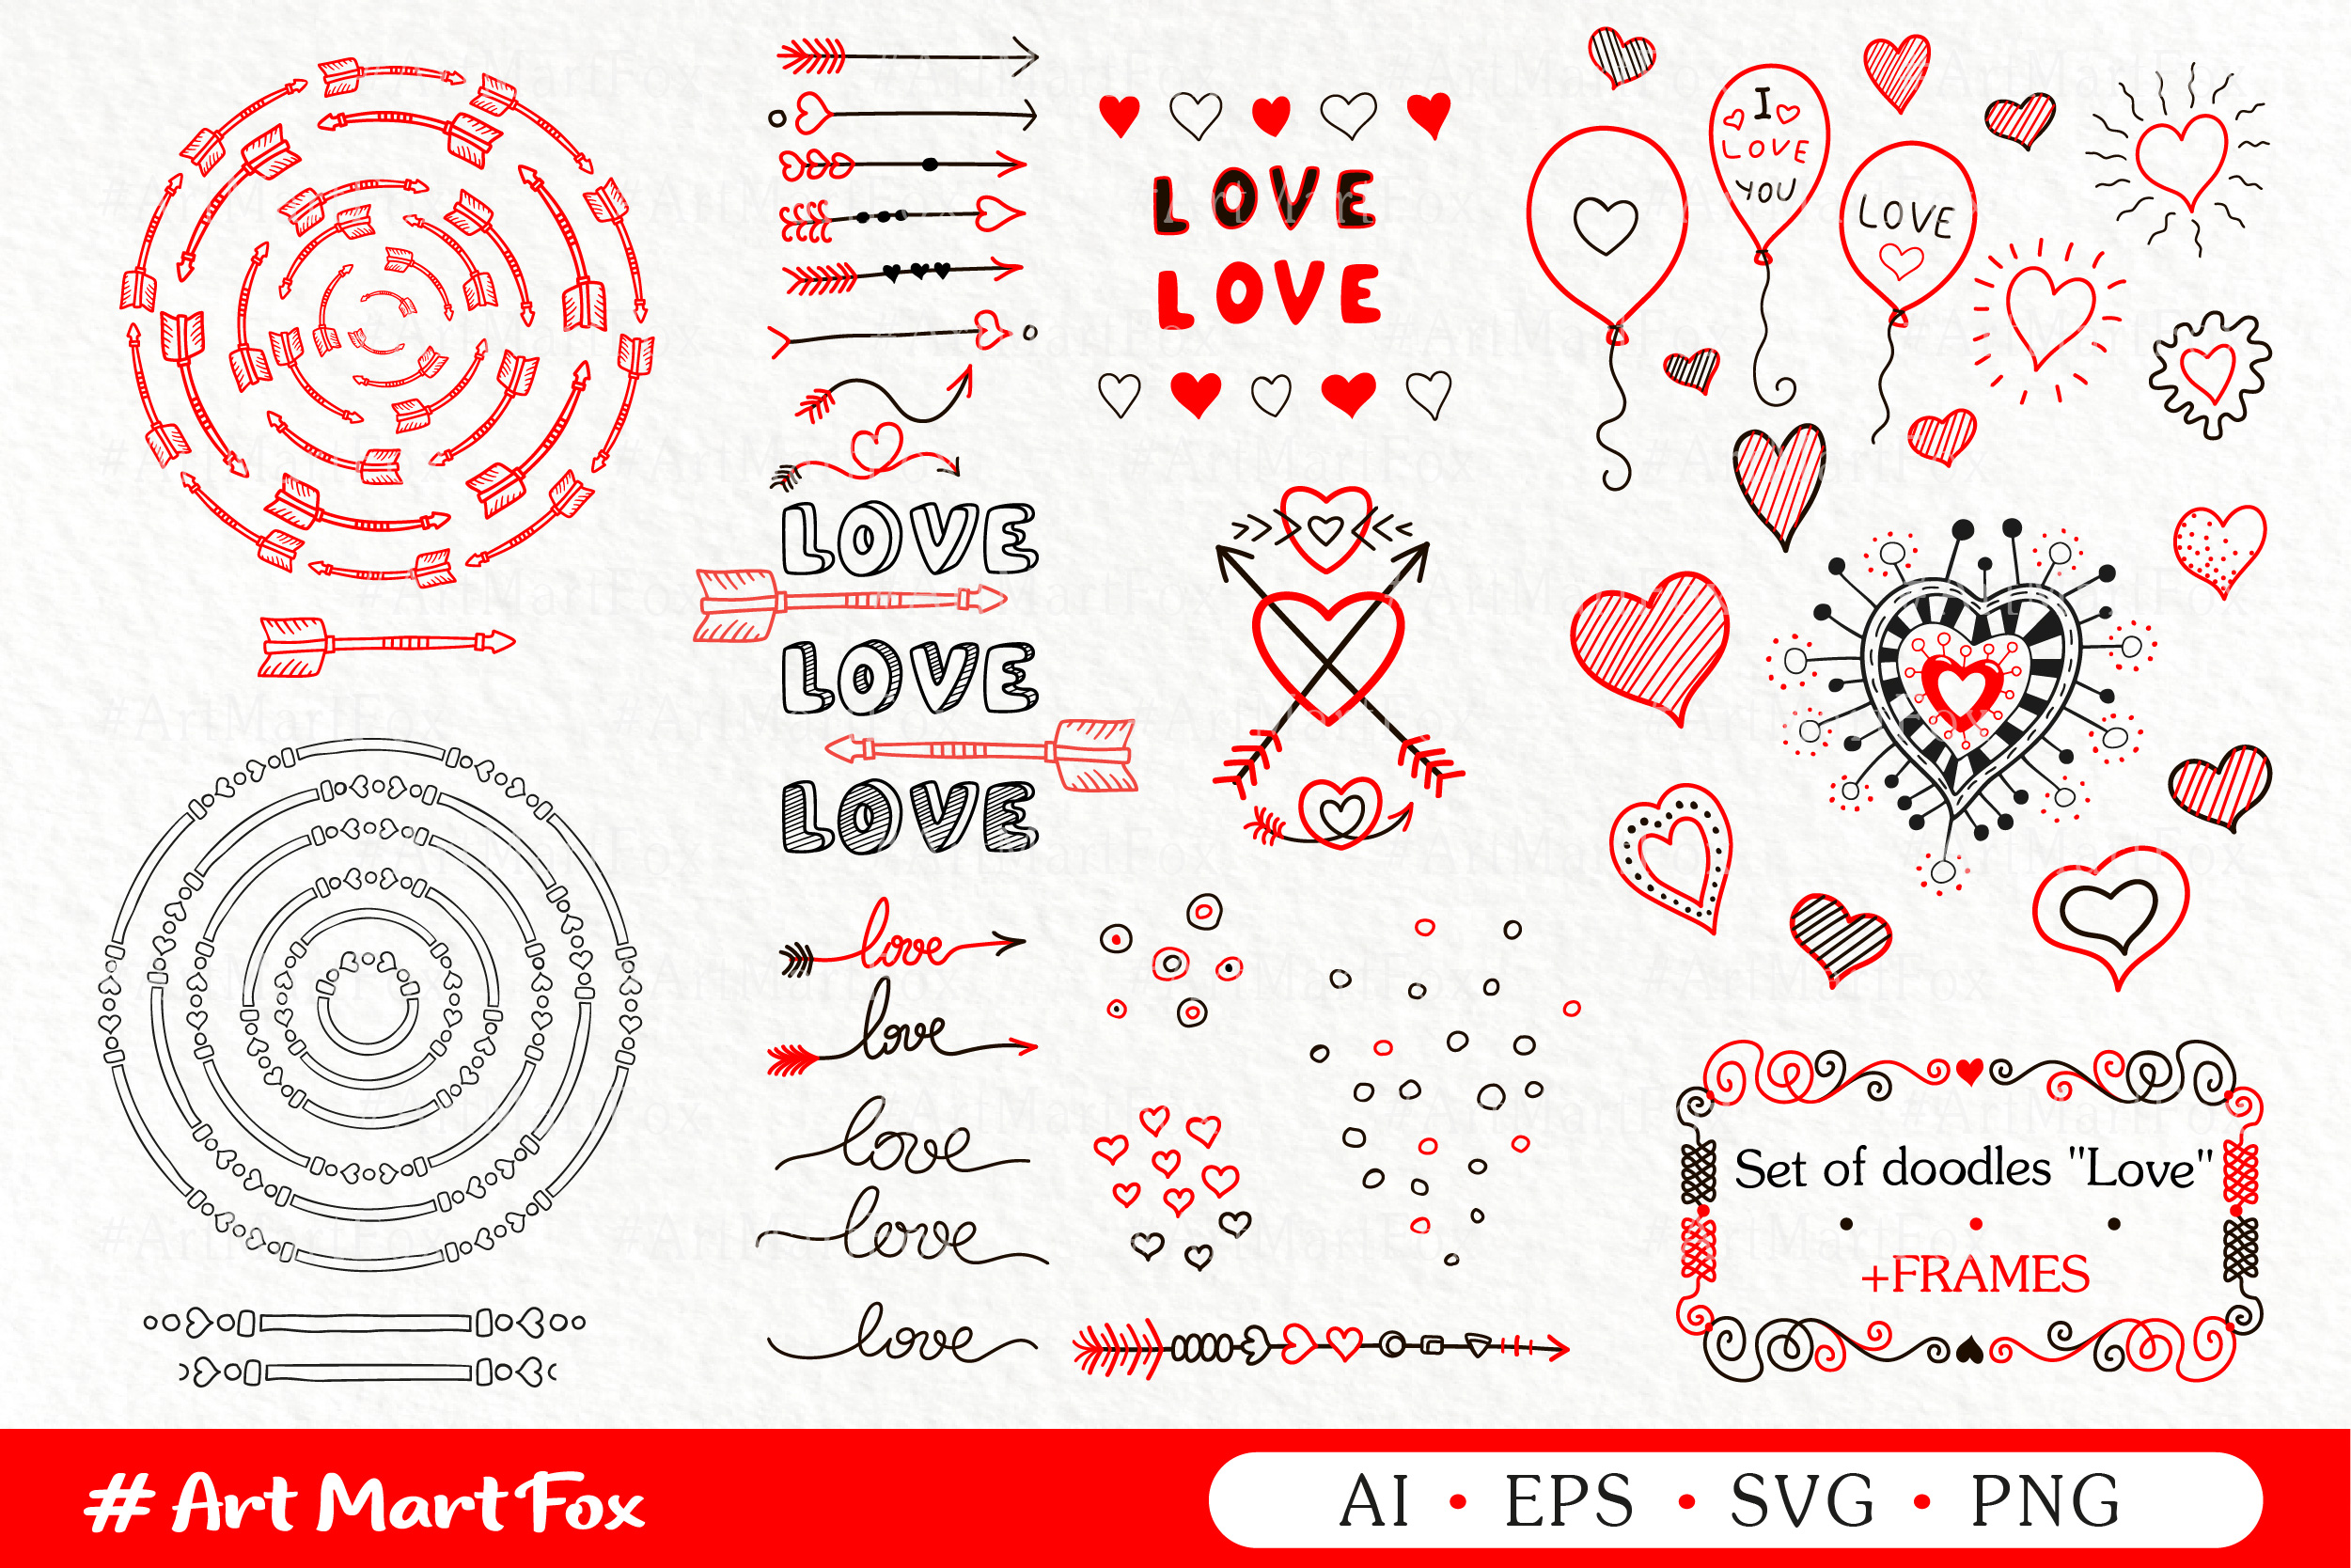 Set of hearts and arrows drawn by hands example image 1